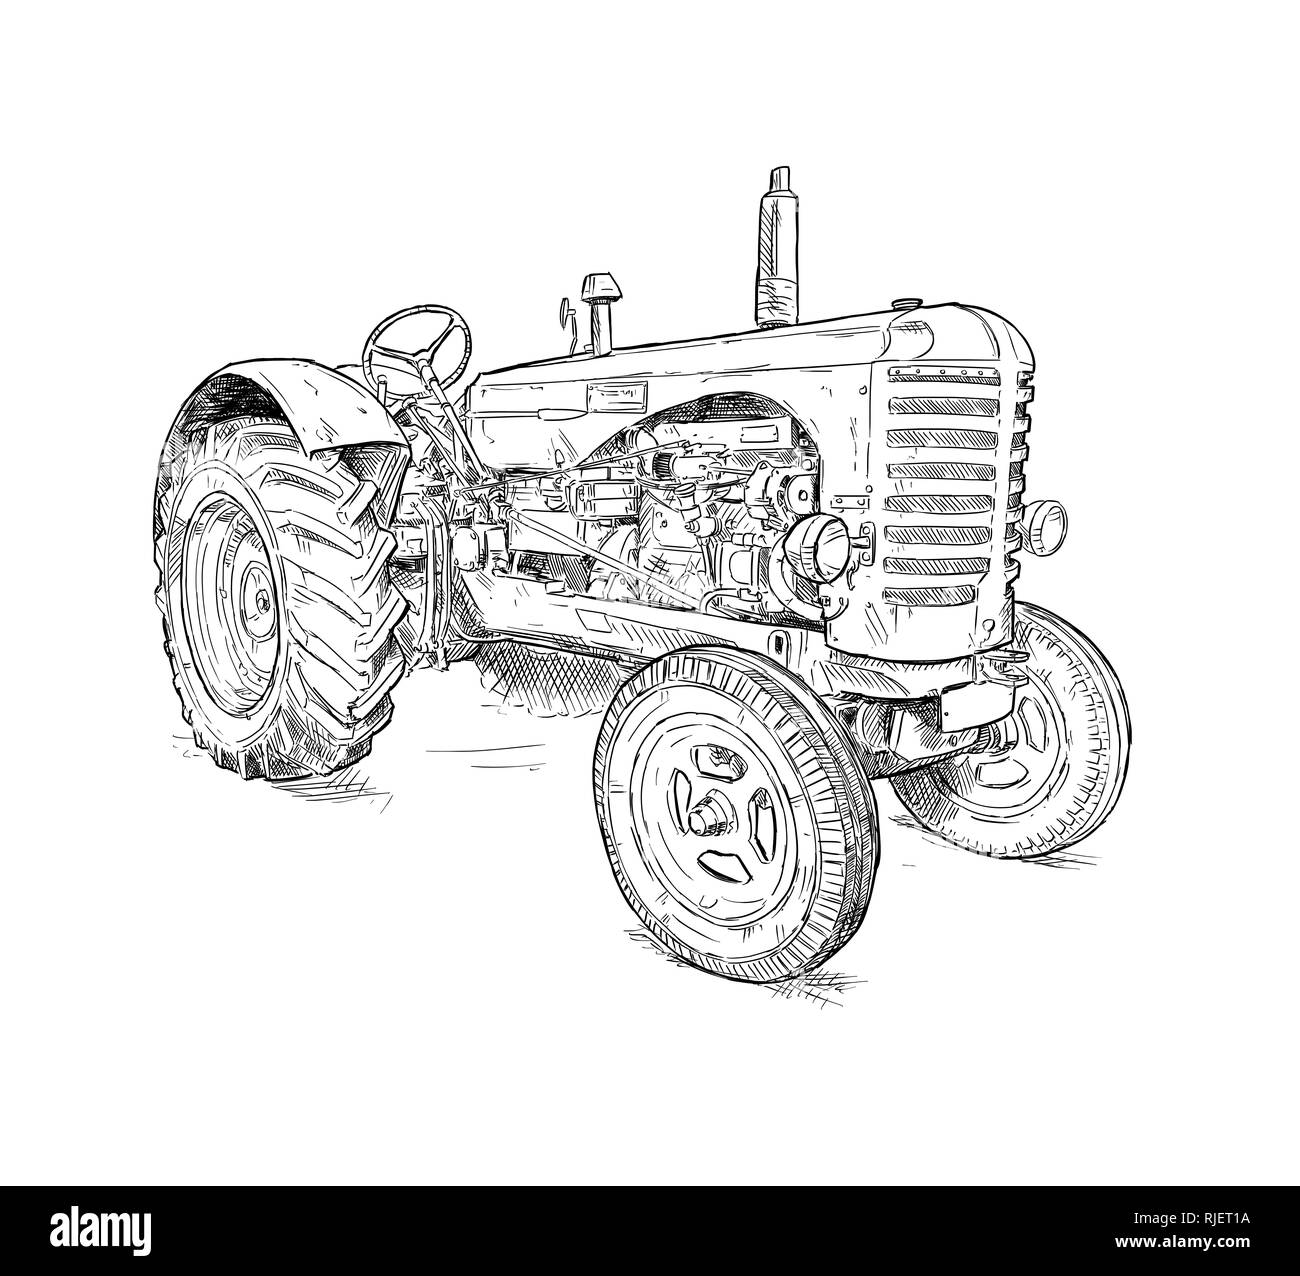 Cartoon or Comic Style Illustration of Old Tractor - Stock Image